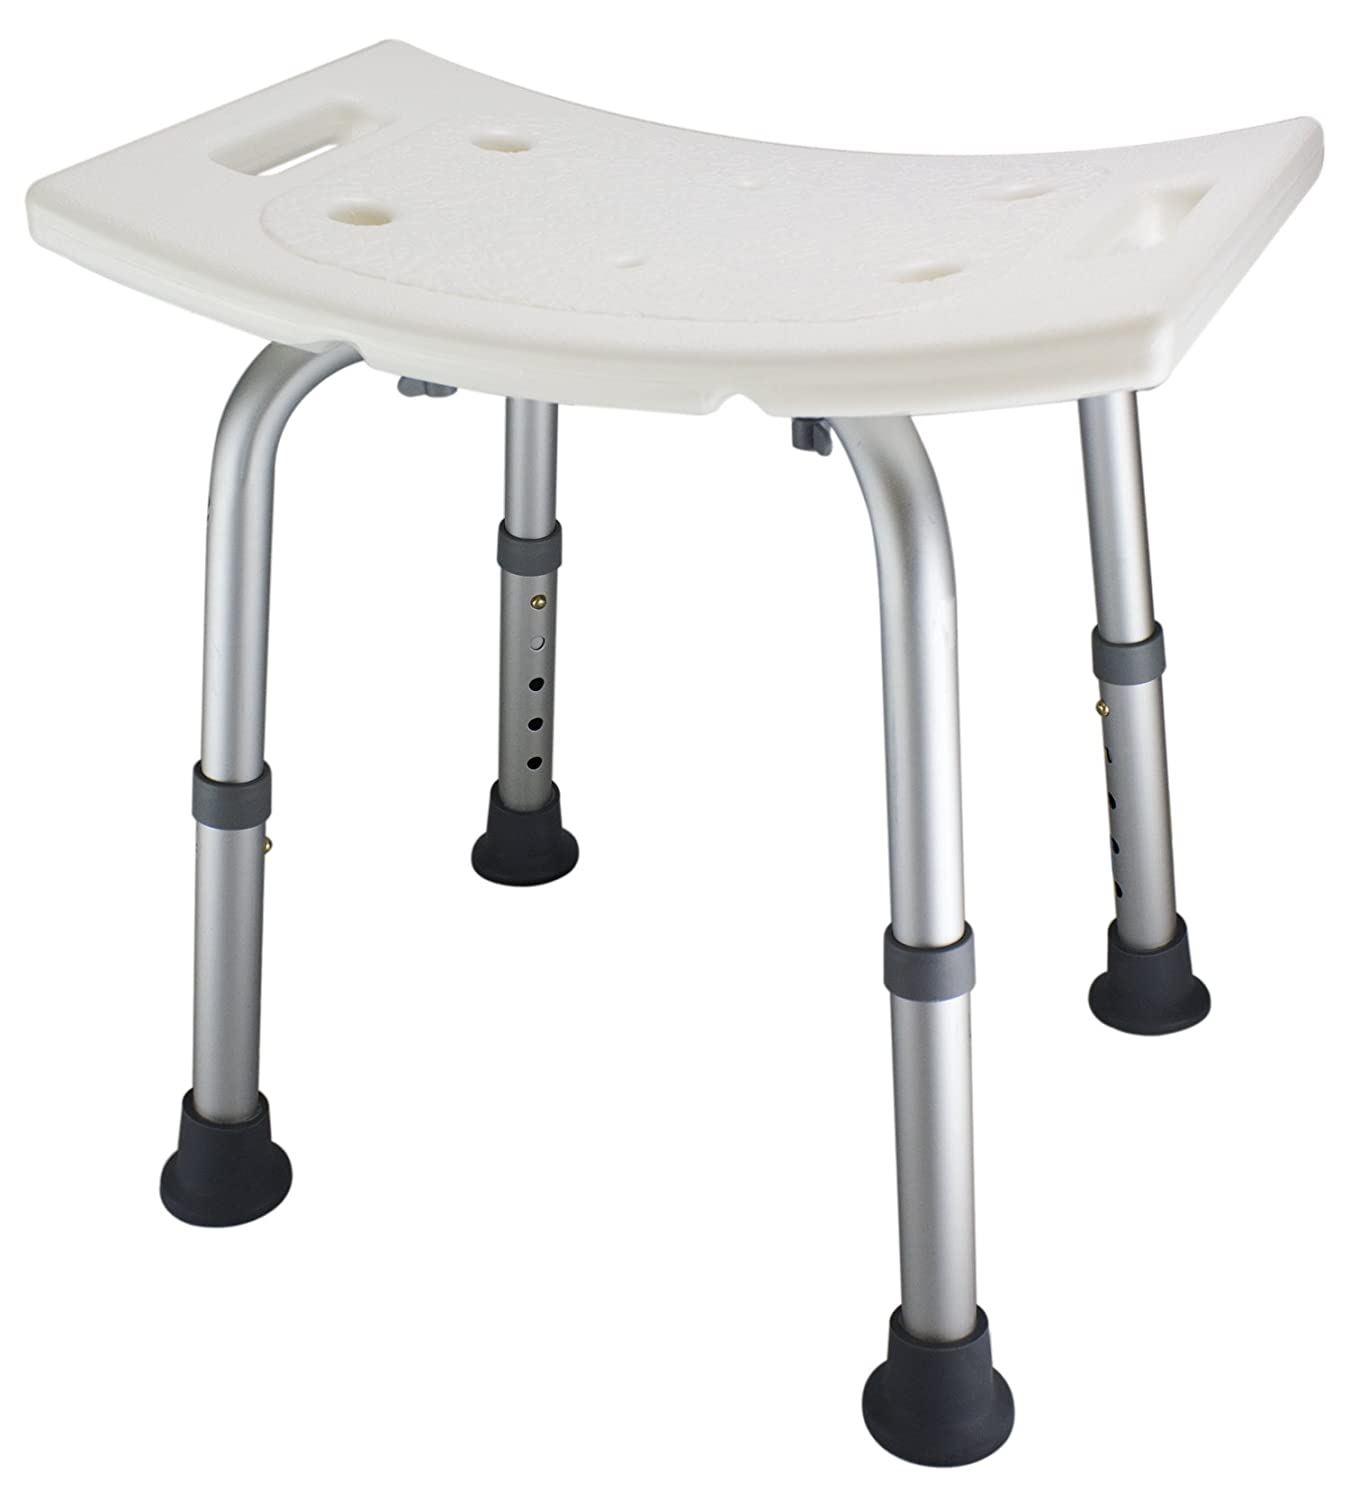 Amazon.com: Ez2care Adjustable Lightweight Shower Bench, White ...